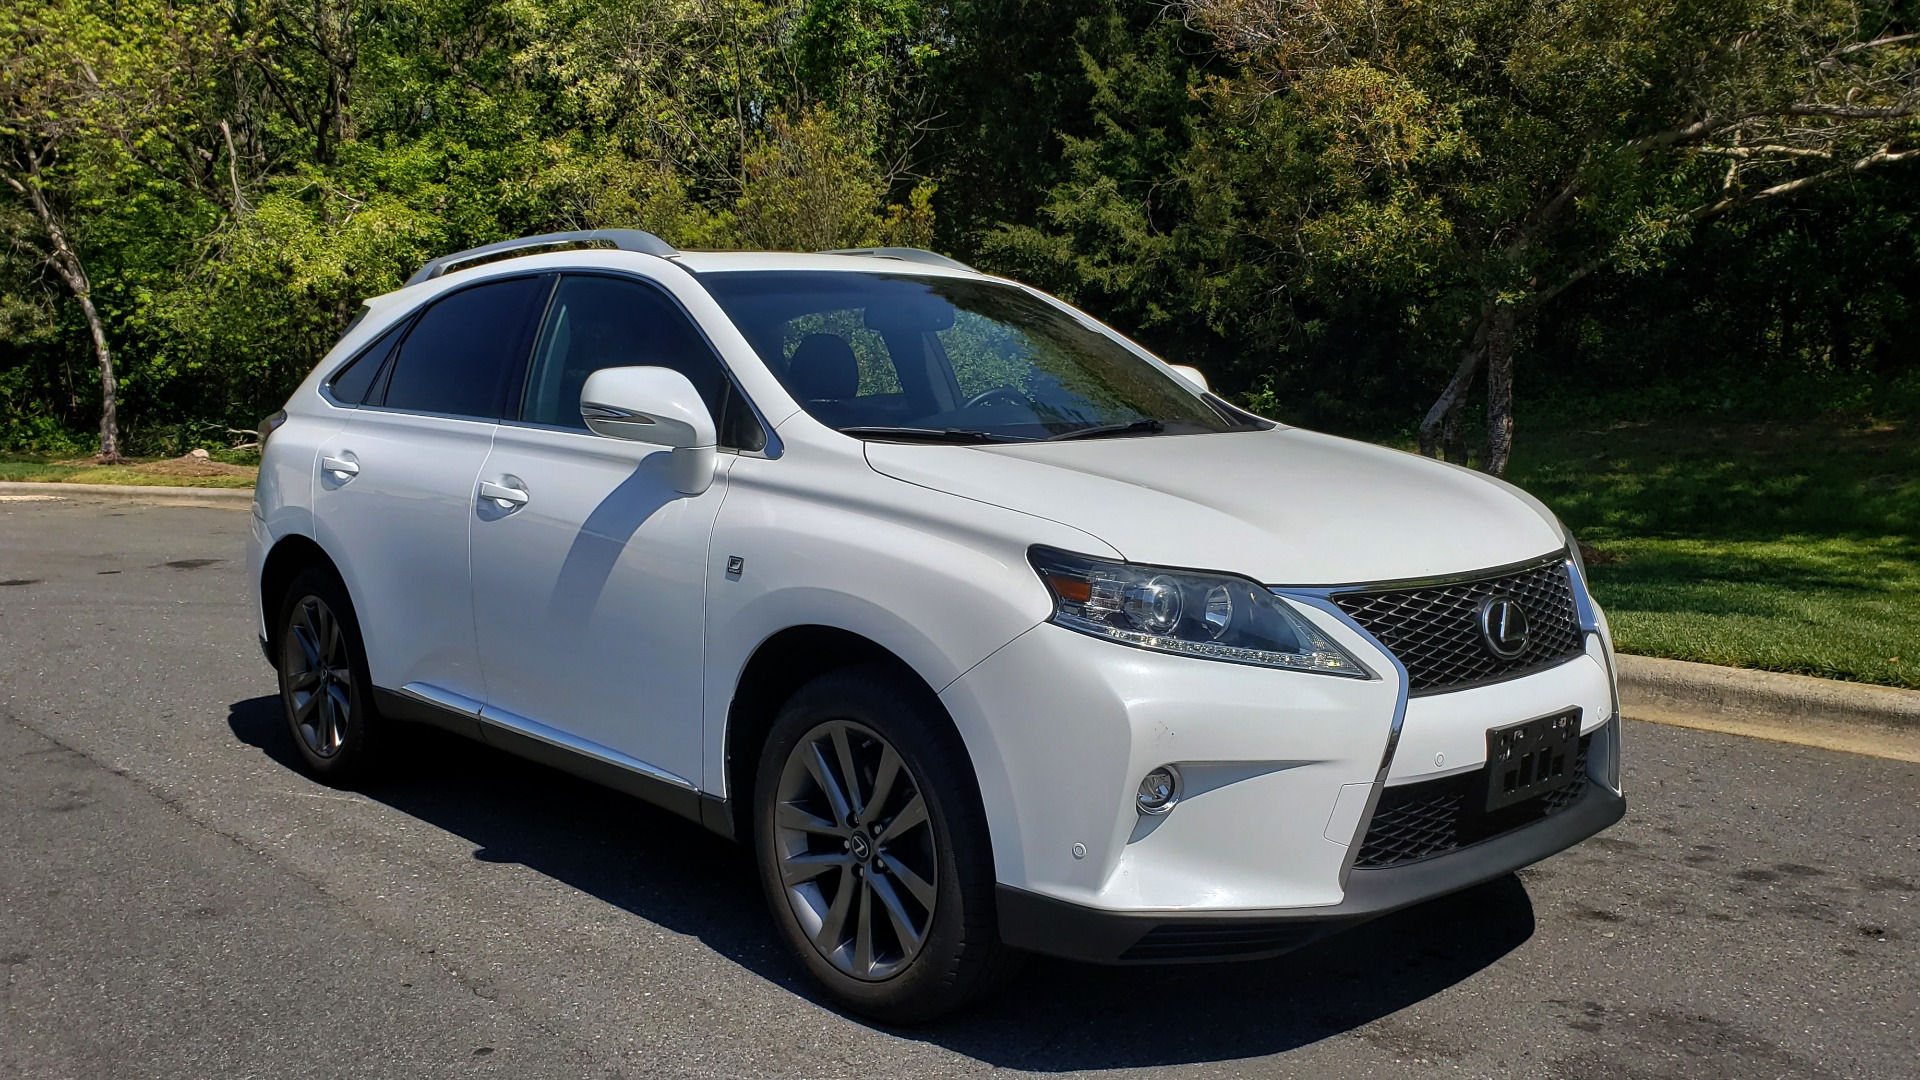 Used 2015 Lexus RX 350 AWD F-SPORT / NAV / SUNBROOF / REARVIEW / BSM / PARK ASST for sale Sold at Formula Imports in Charlotte NC 28227 4